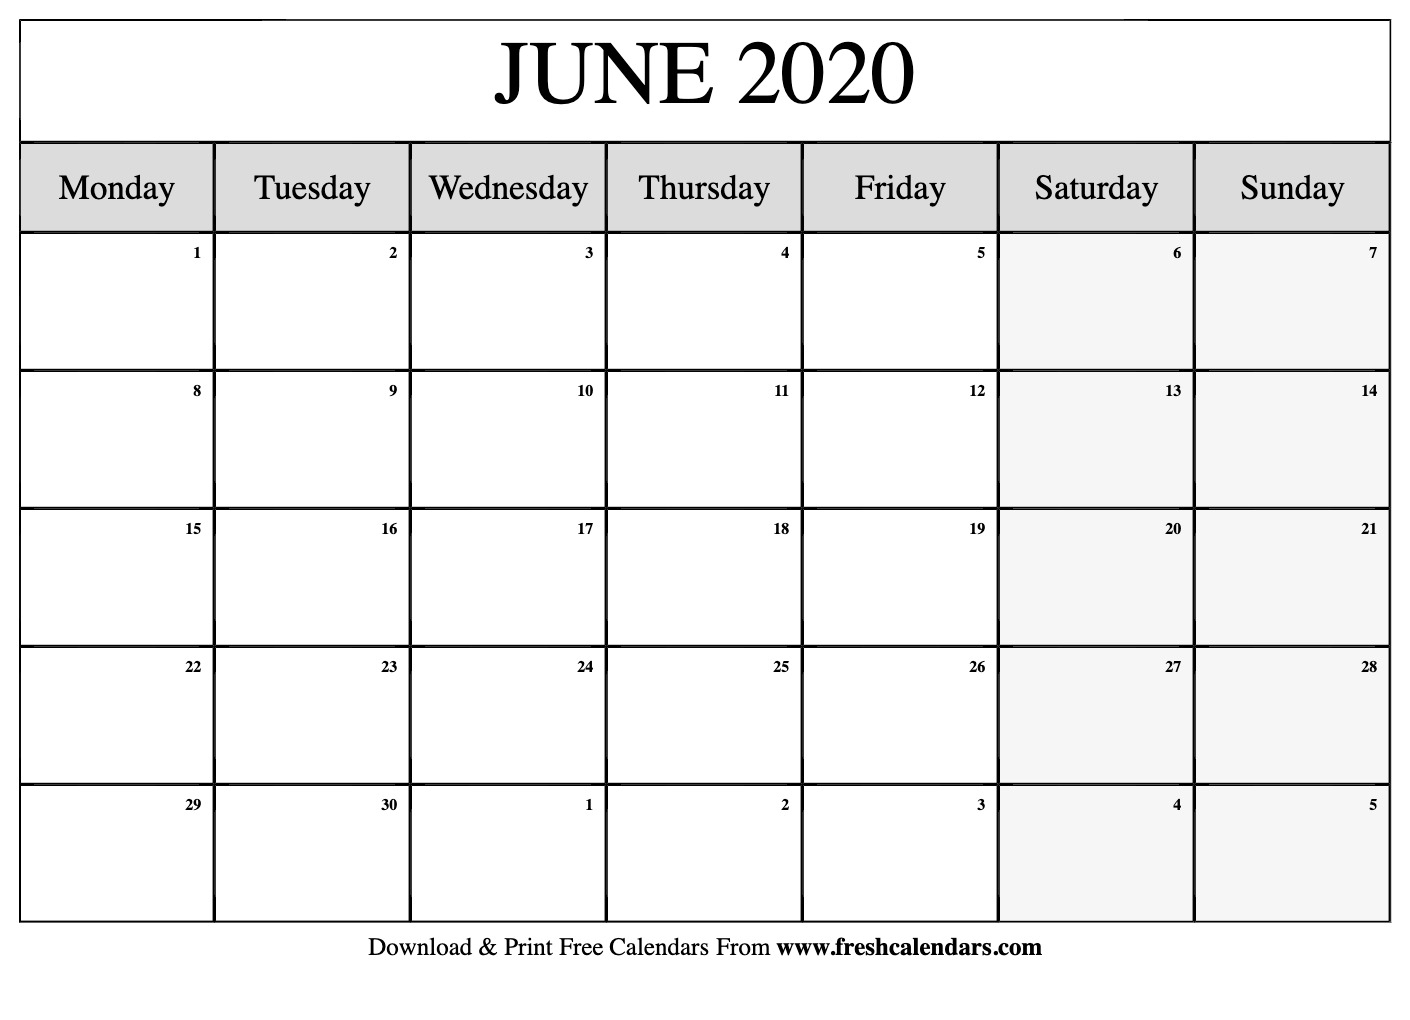 Free Printable June 2020 Calendar in 2020 Printable Calendars Beginning With Monday